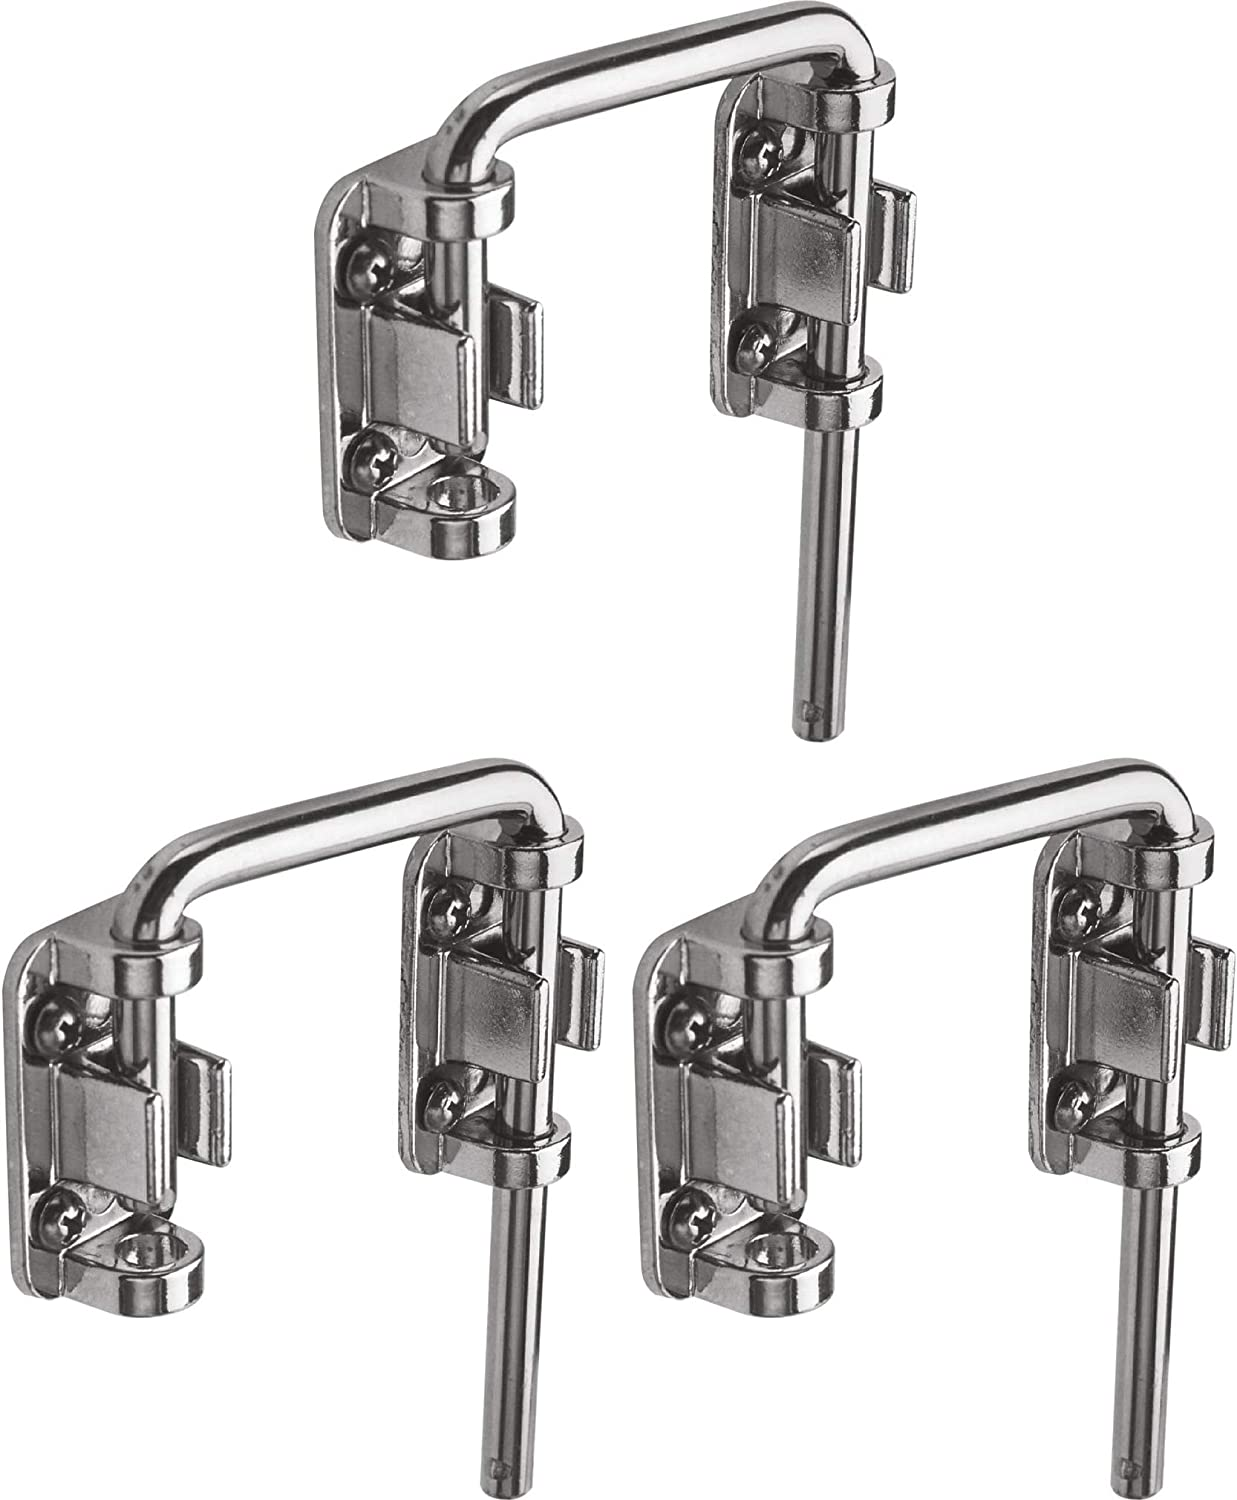 """Install Additional Child-Safe Security Defender Security U 9847 Patio Sliding Door Loop Lock 2-1//8/"""" Hardened Steel Bar with Diecast Base Increase Home Security Chrome Plated 2-Pack"""